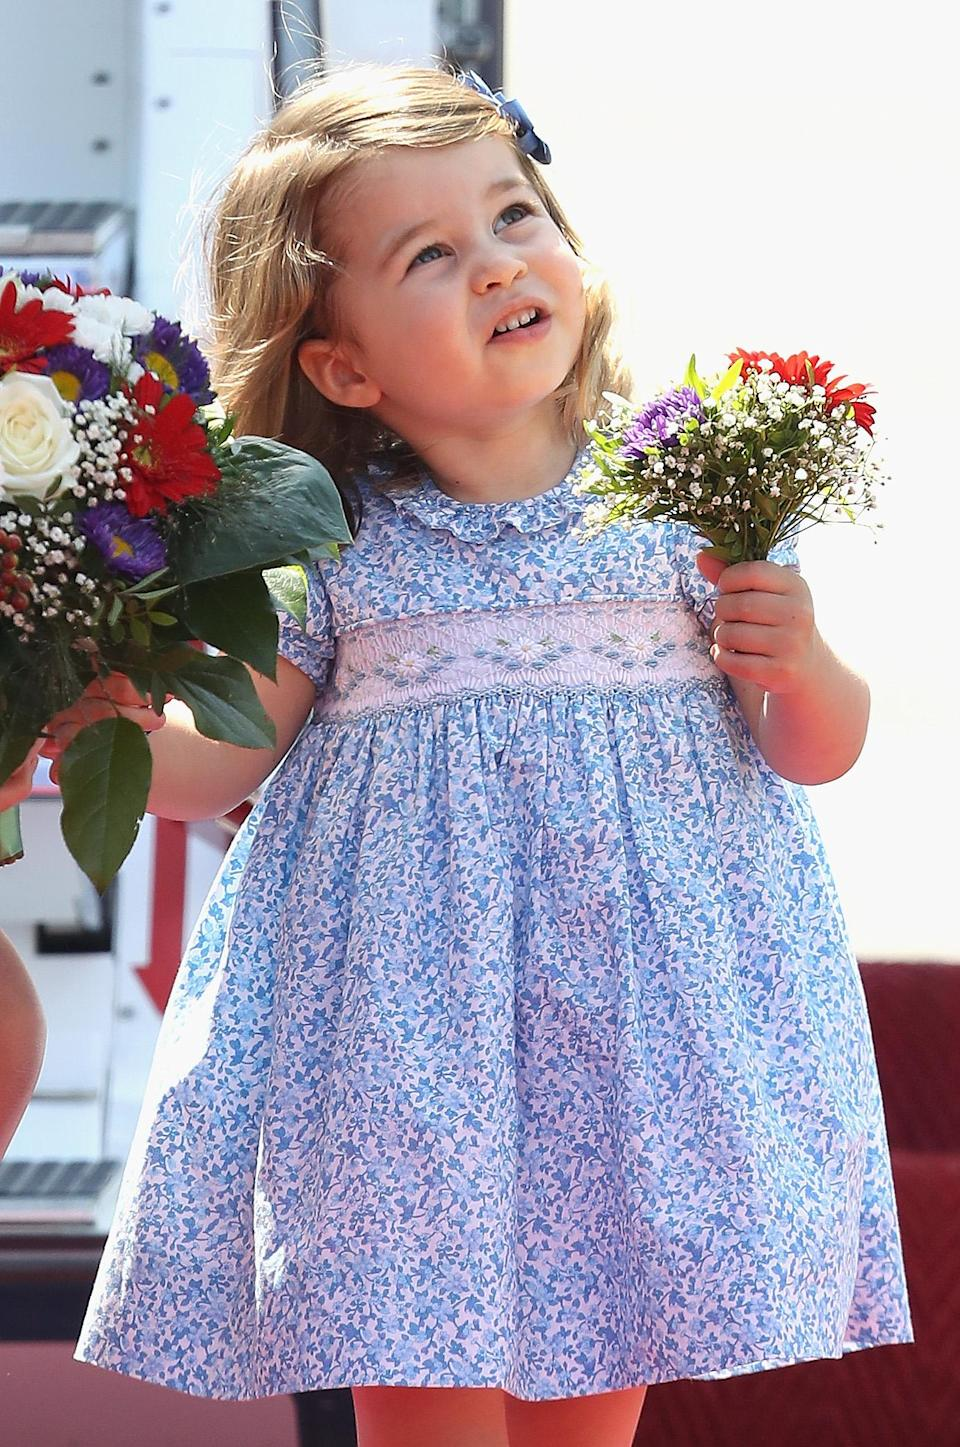 Princess Charlotte won't lose her place in line. (Photo: Chris Jackson/Getty Images)